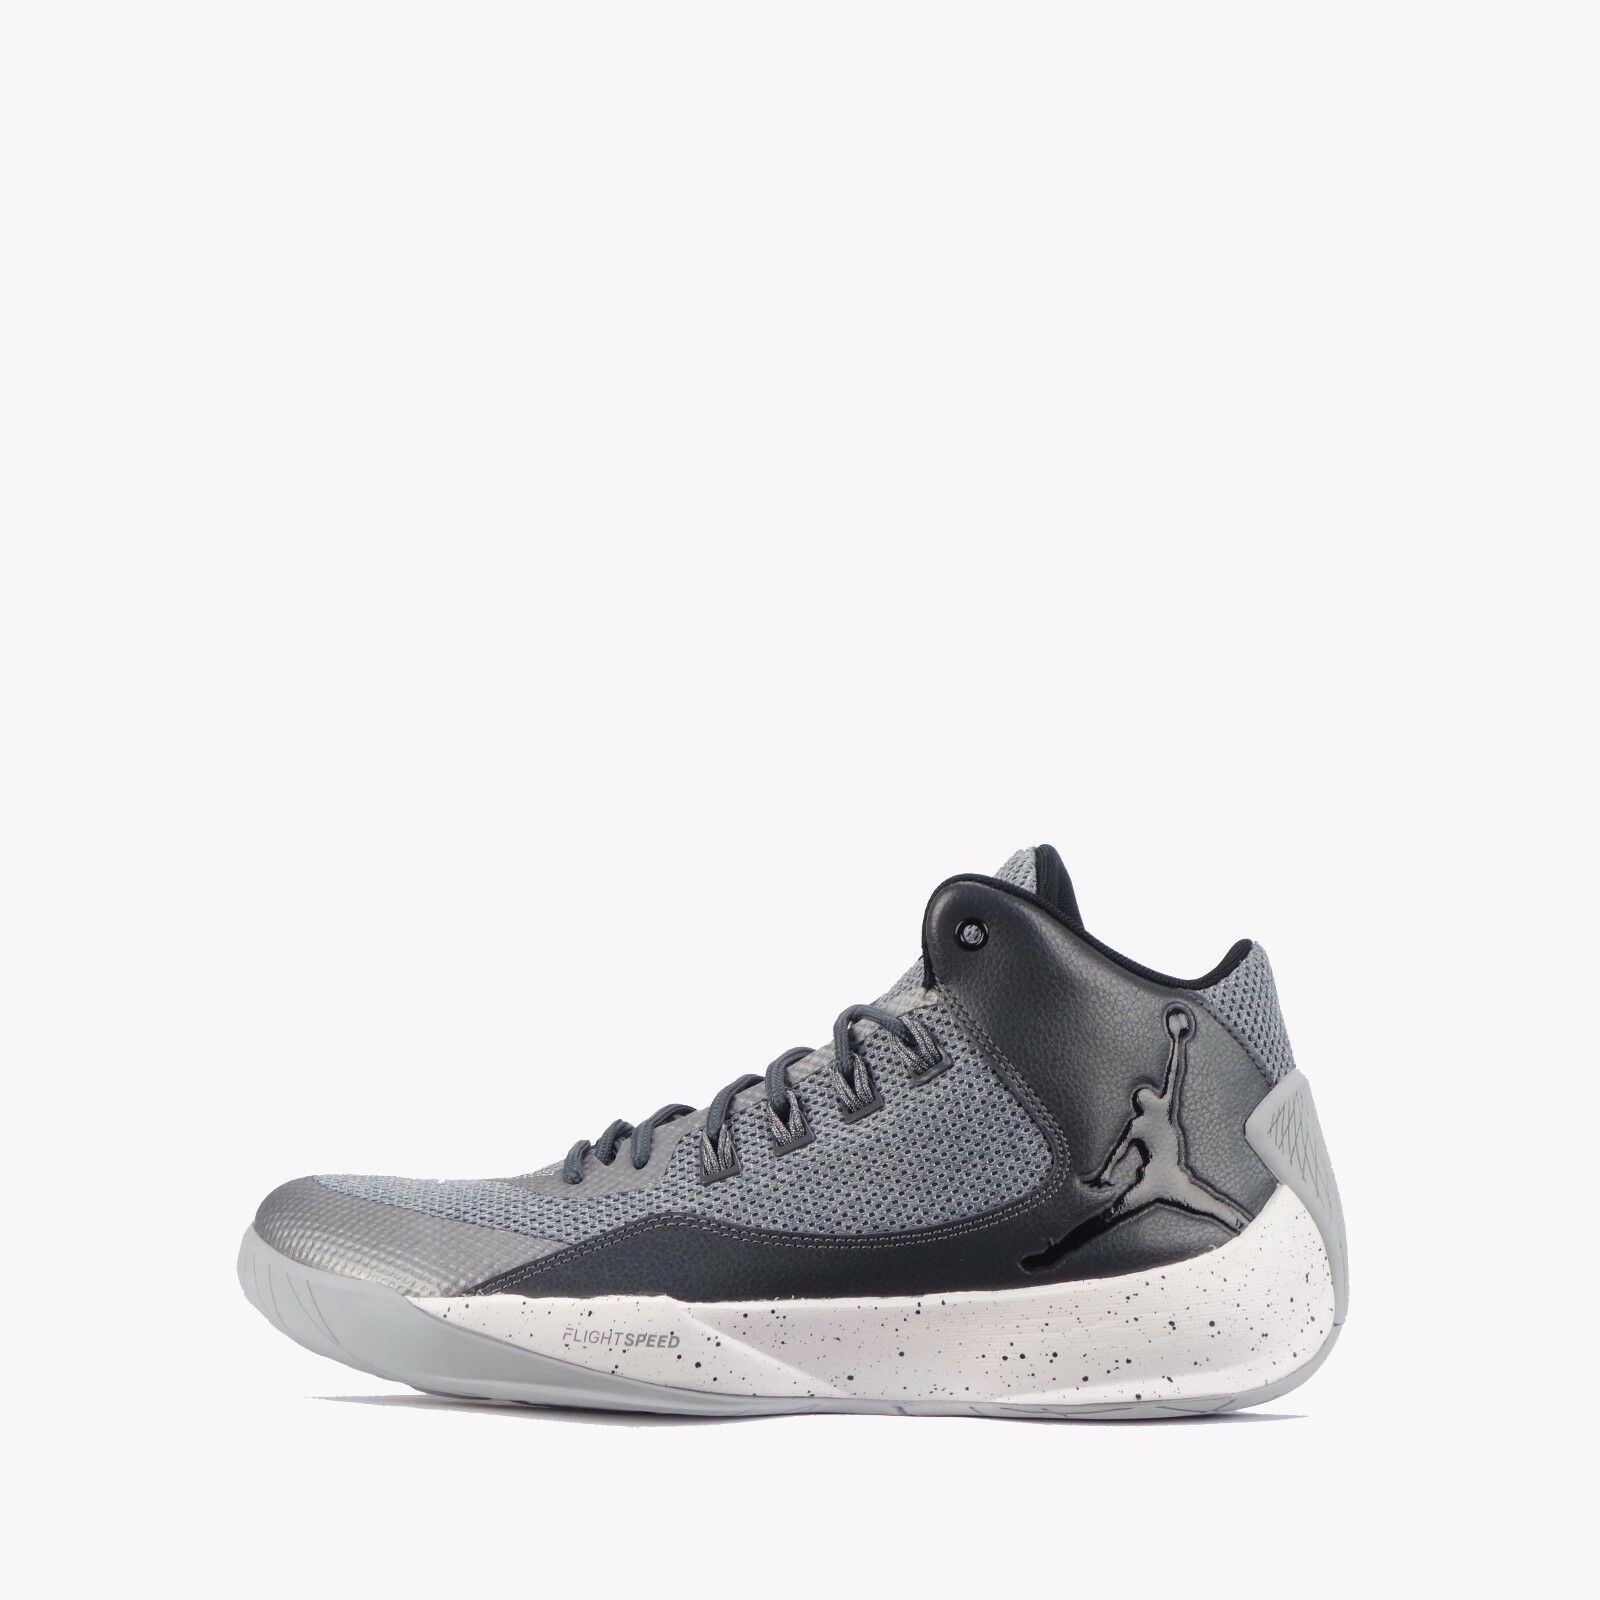 Nike Jordan Rising High 2 Men's shoes Wolf Grey Black